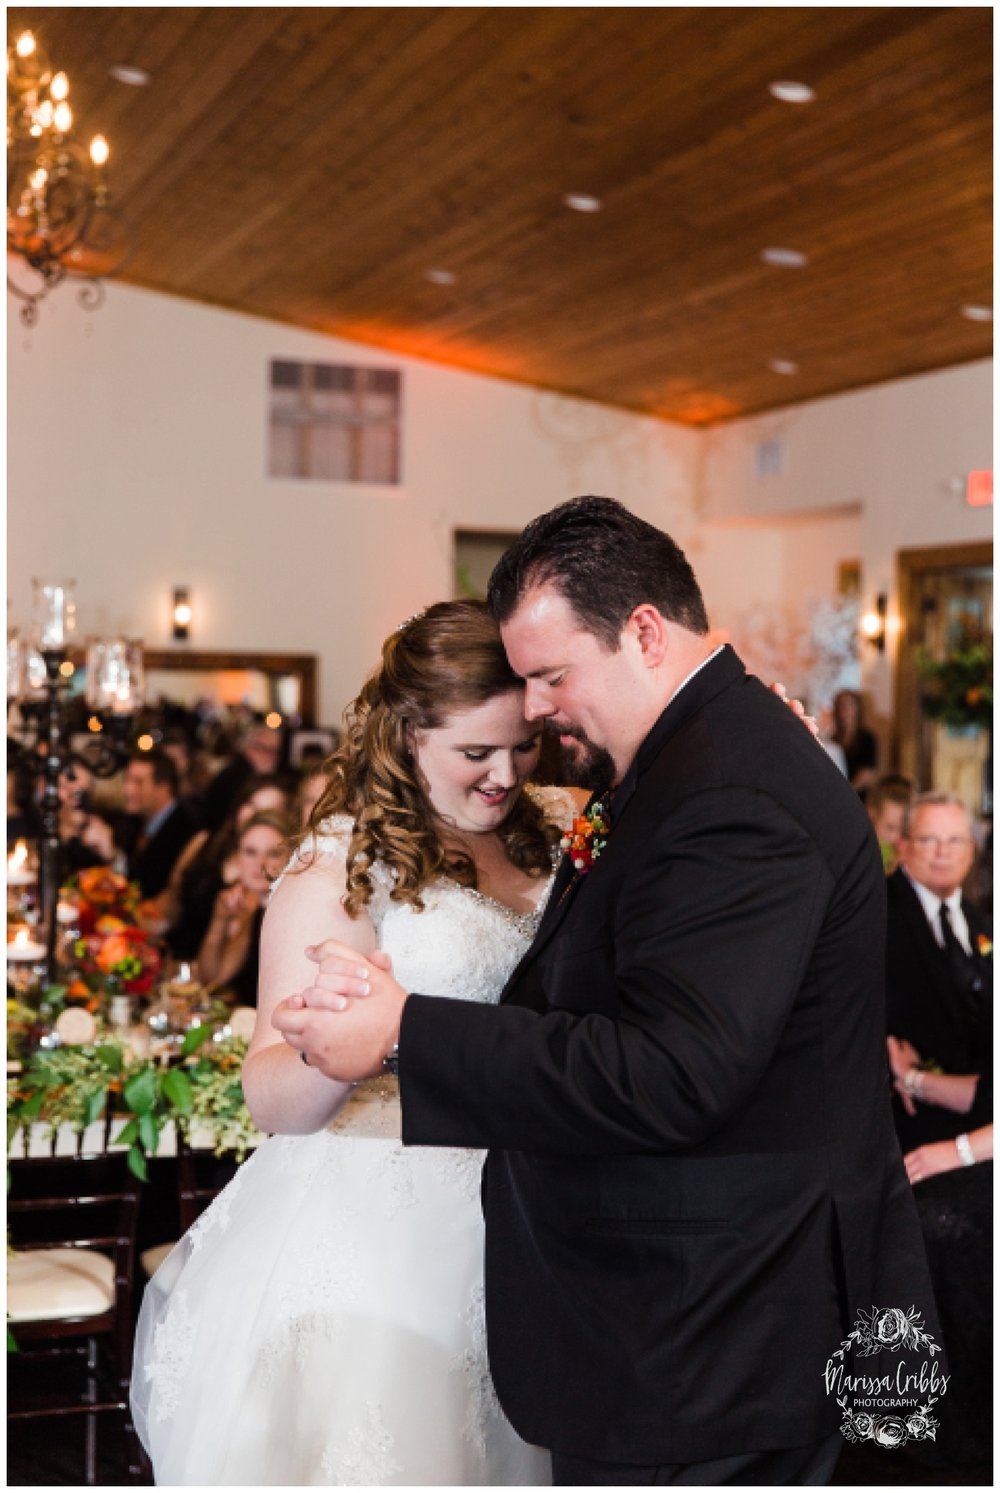 KELLY WEDDING | VENUE AT WILLOW CREEK | MARISSA CRIBBS PHOTOGRAPHY_3759.jpg